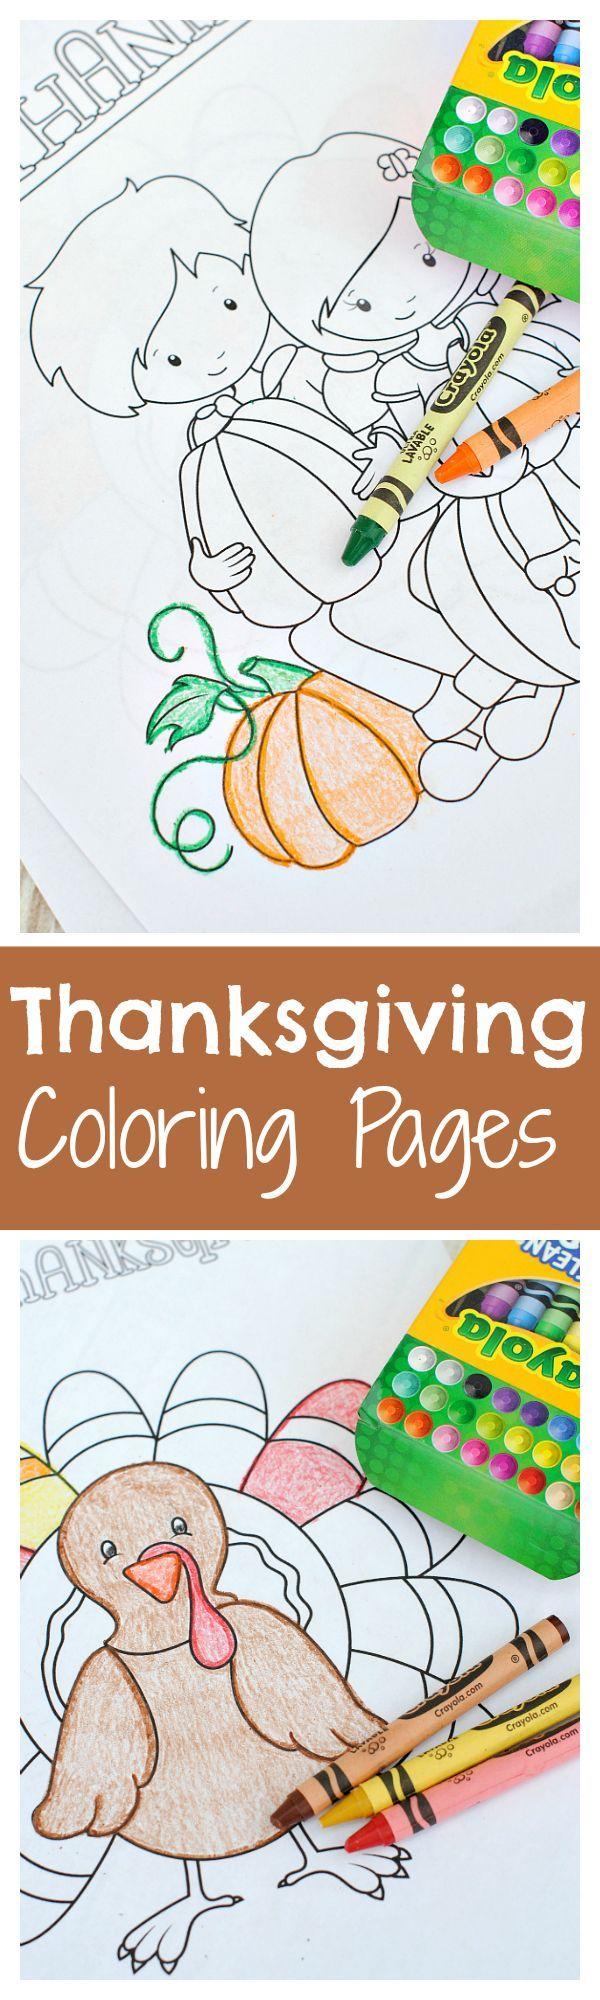 Free Thanksgiving Coloring Pages | Pavo, Colorear y Acción